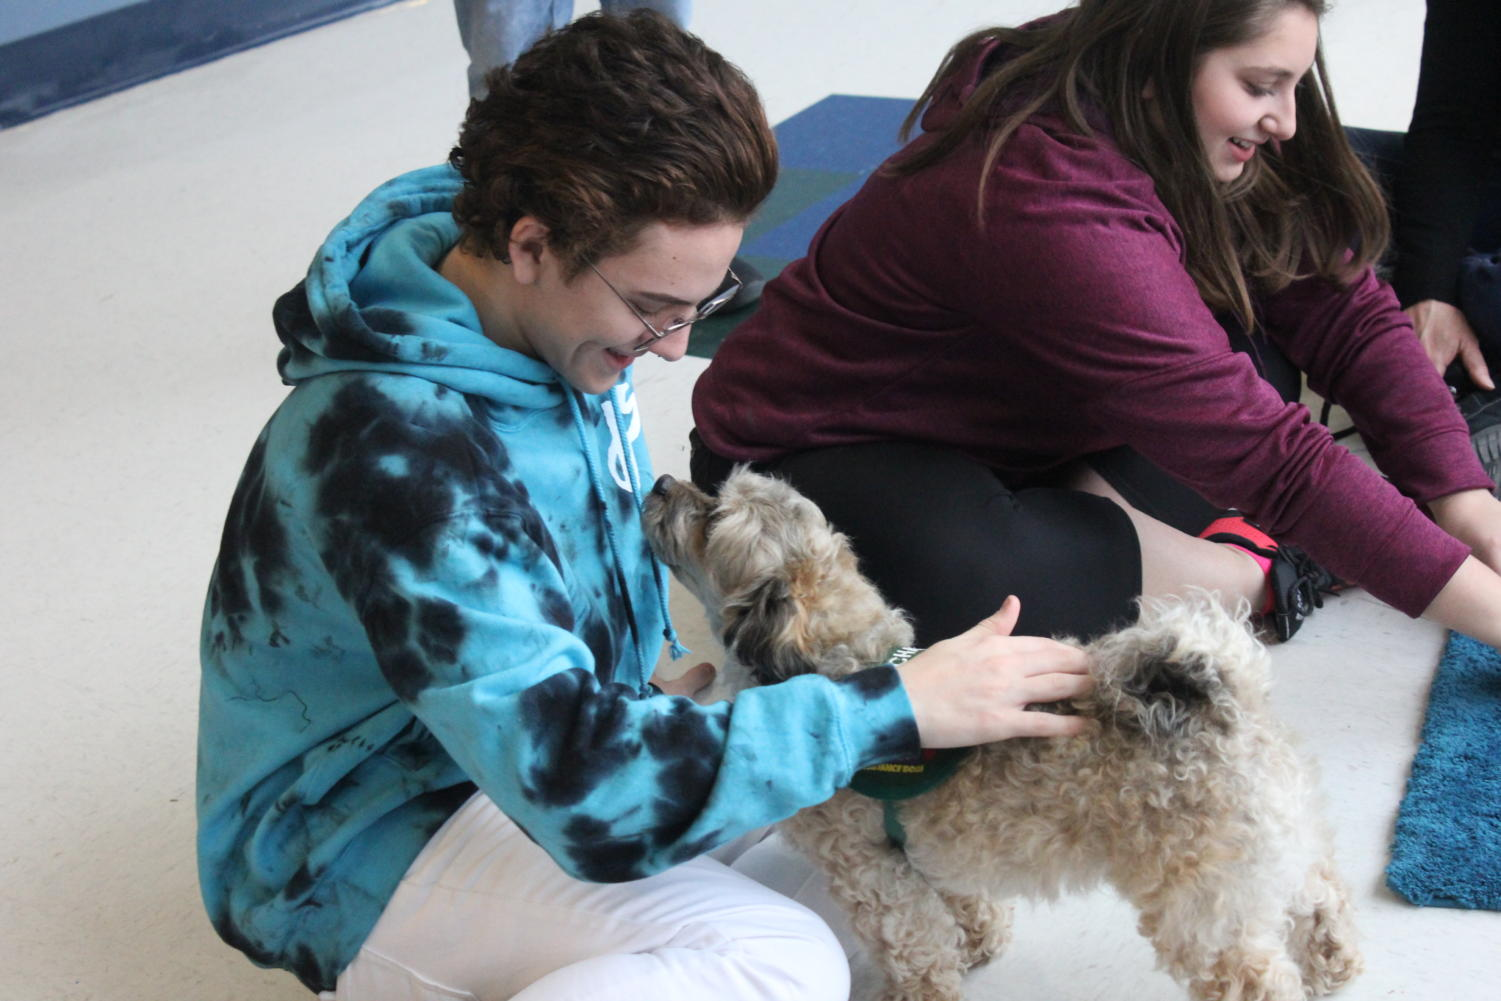 Milo Laux, senior, pets Buddy, a therapy dog. Therapy dogs visited MHS to help students relieve stress before finals week.